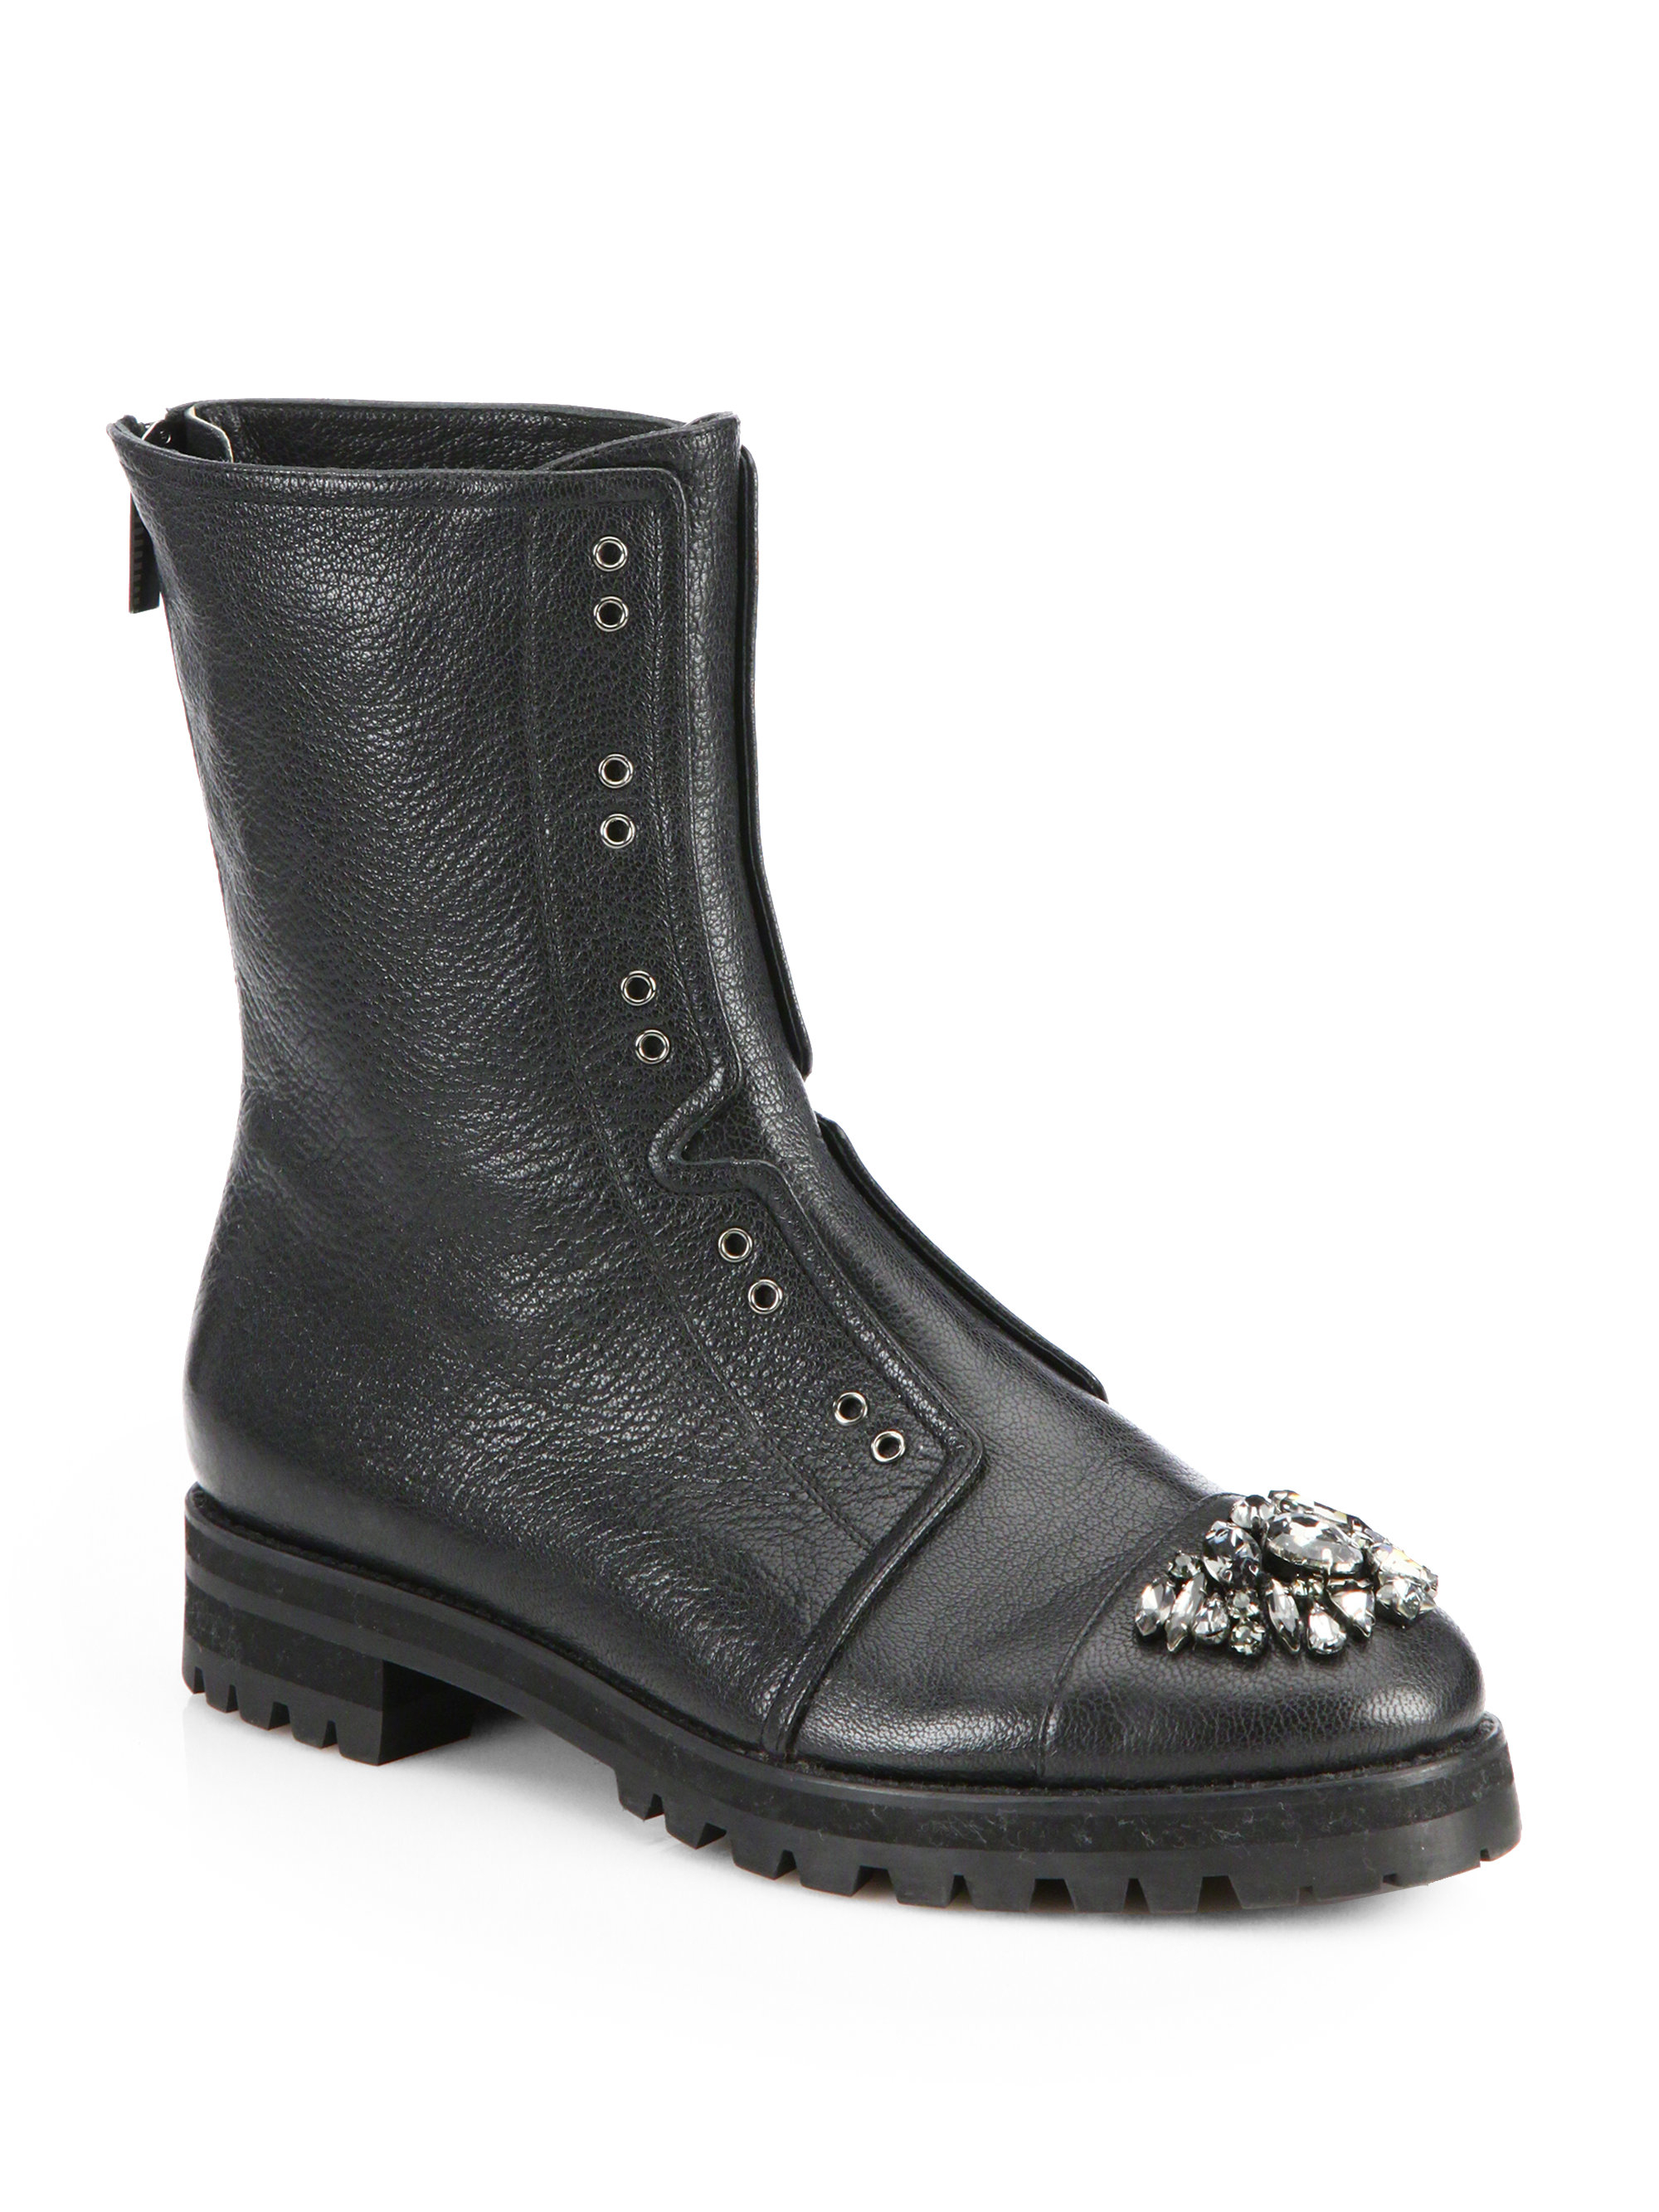 Jimmy Choo Hatcher Embellished Leather Combat Boots In